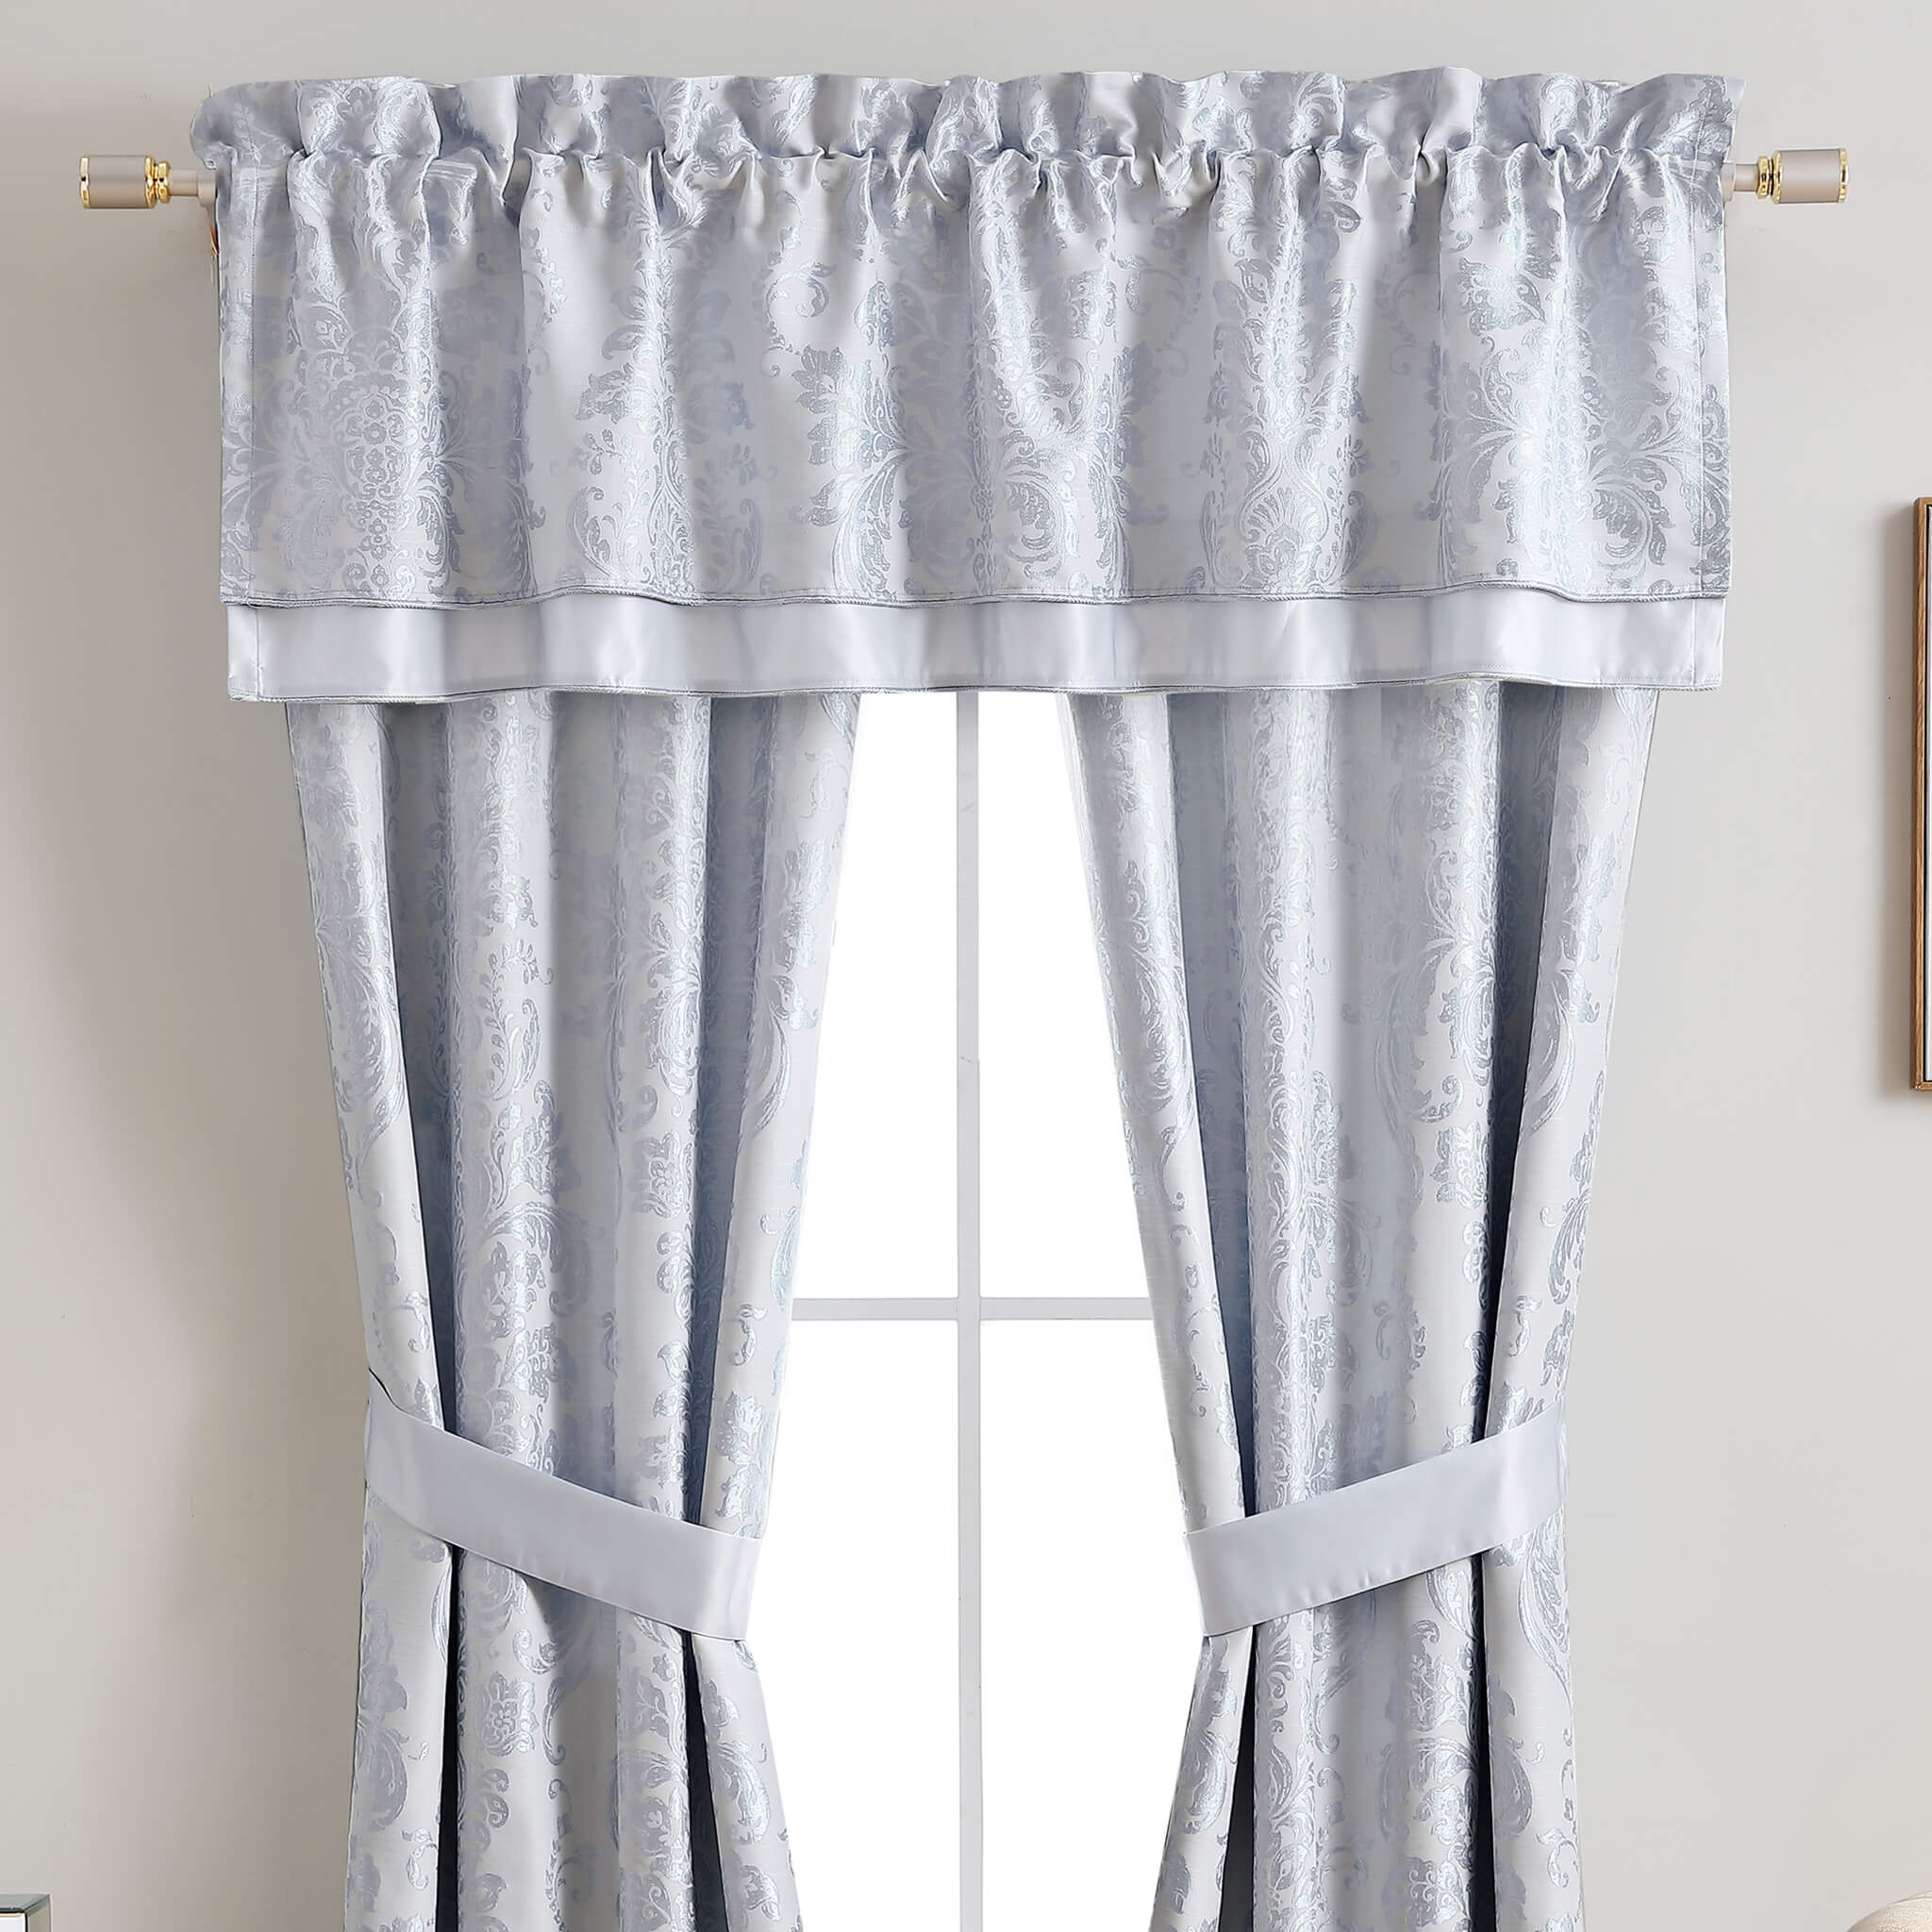 Mia Blue Canopy Window Valance